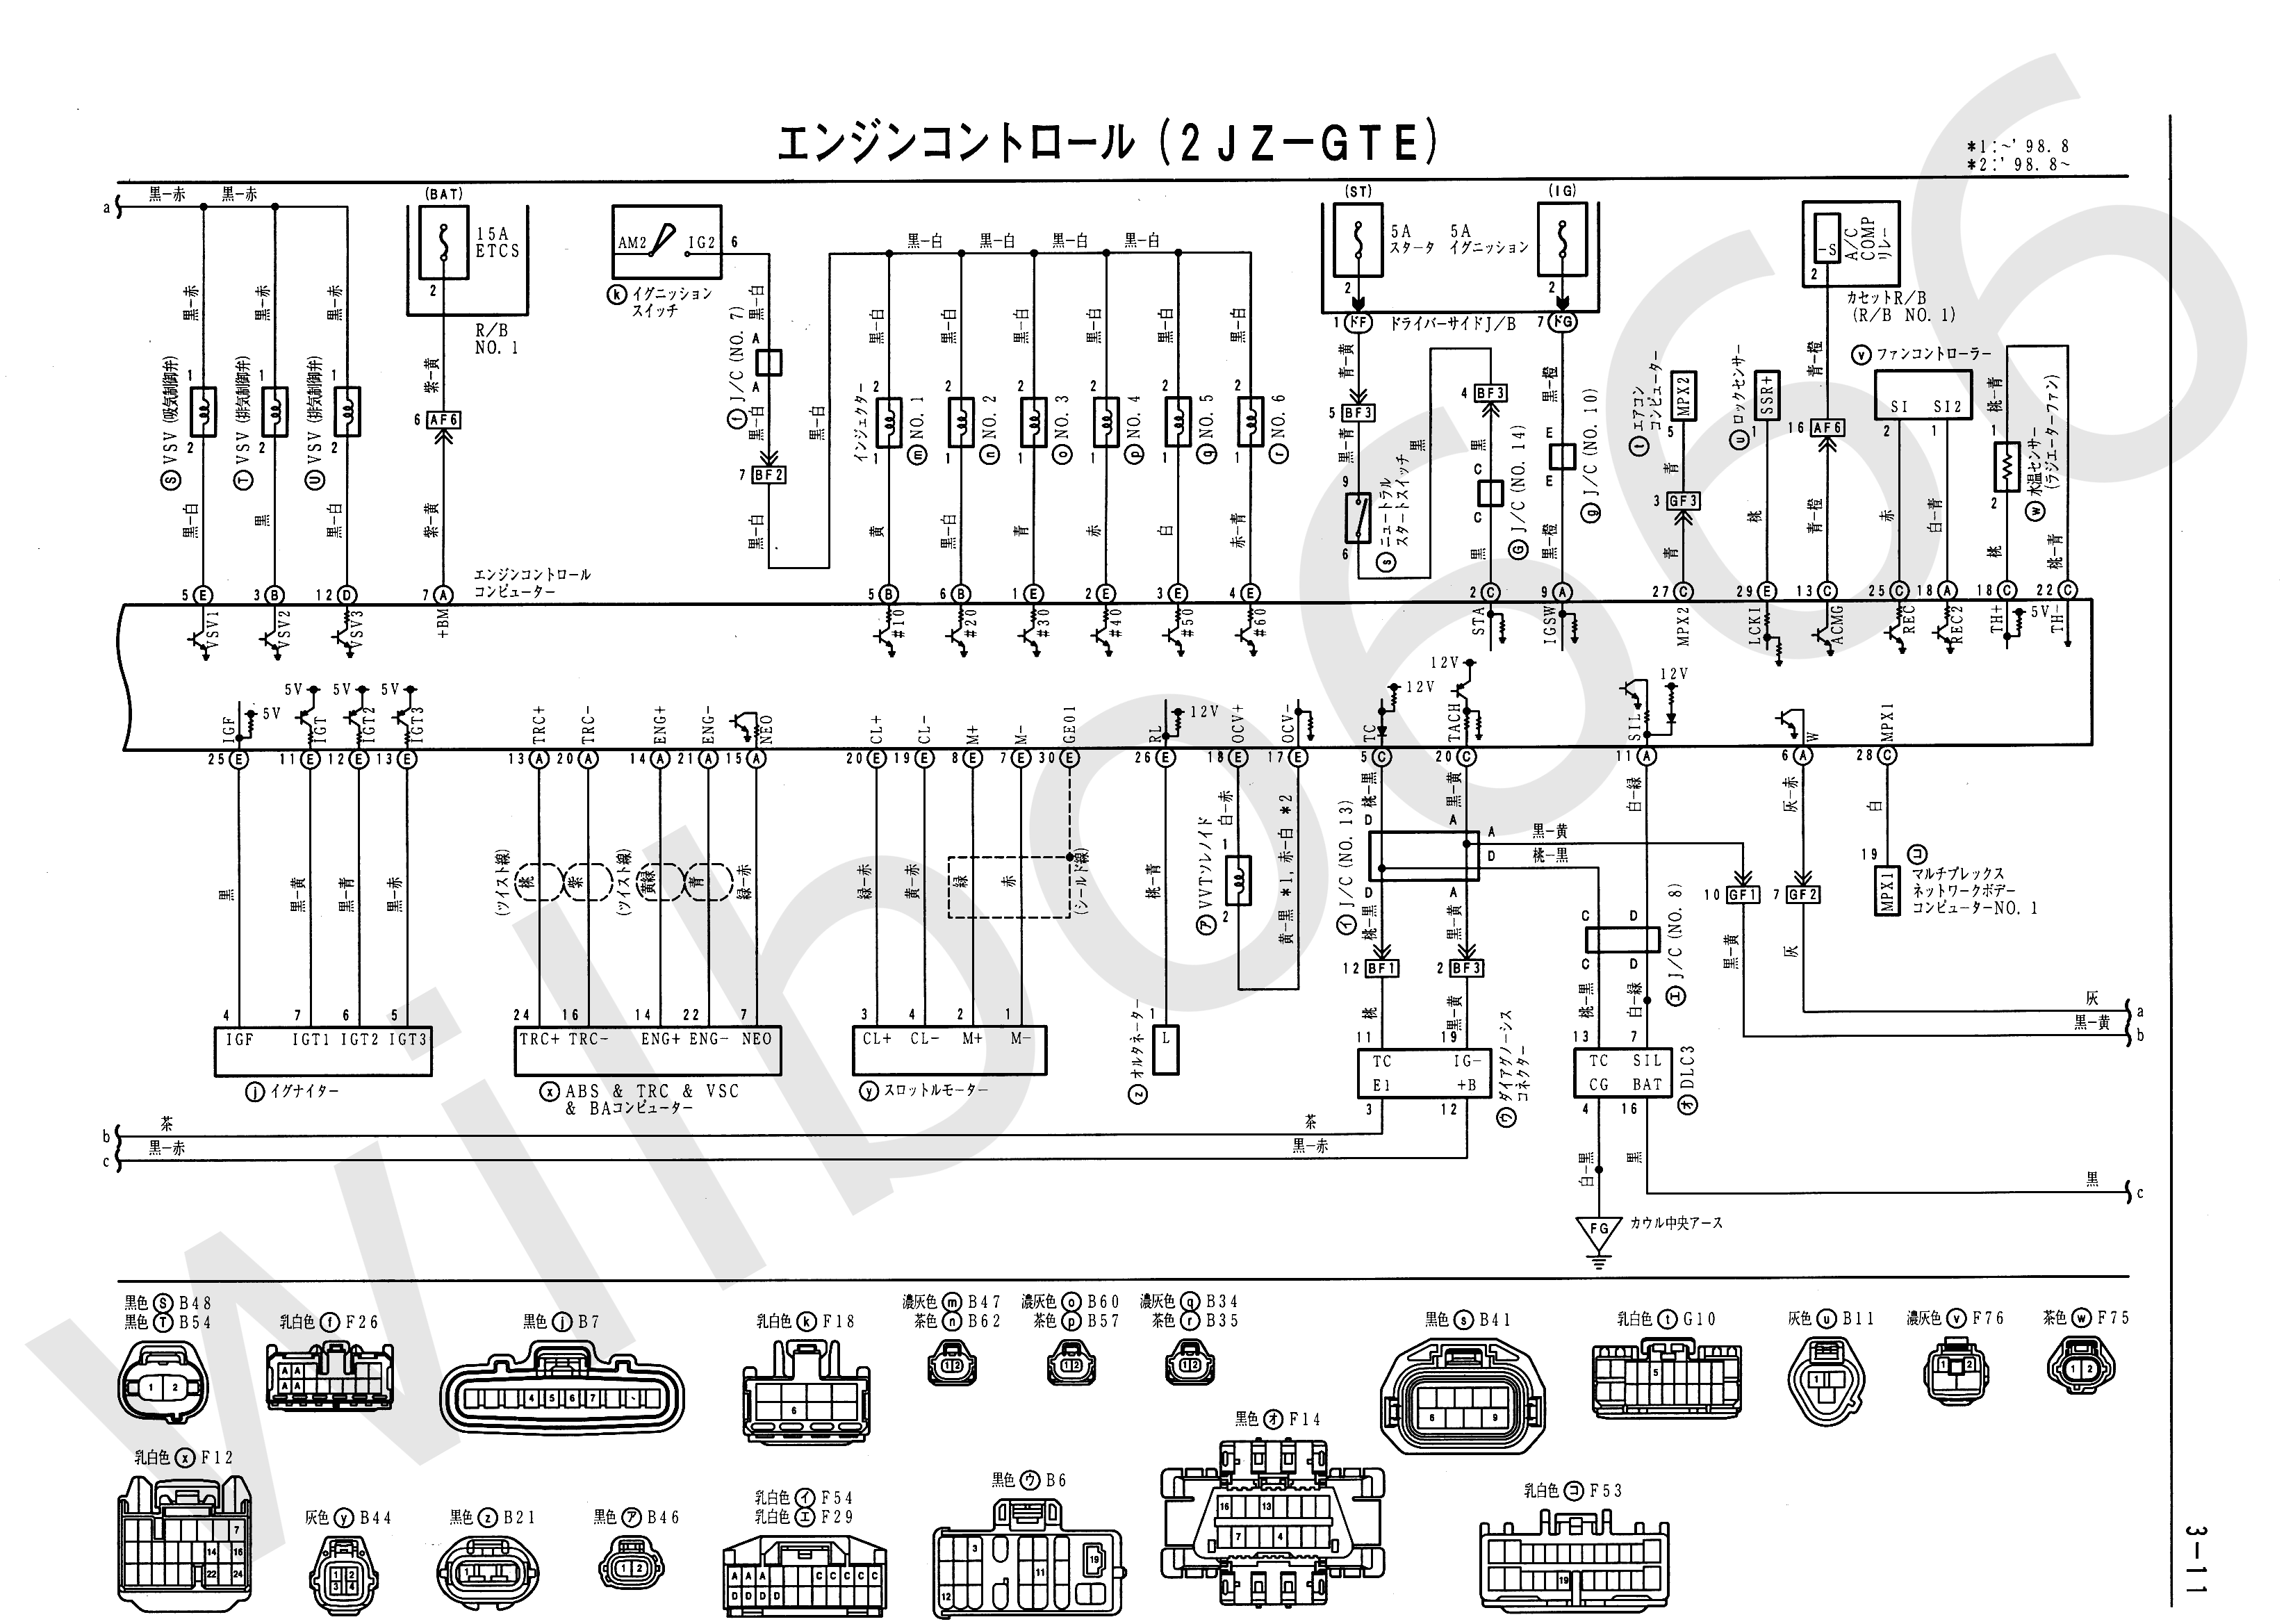 JZS161 Electrical Wiring Diagram 6748505 3 11 wilbo666 2jz gte vvti jzs161 aristo engine wiring  at eliteediting.co